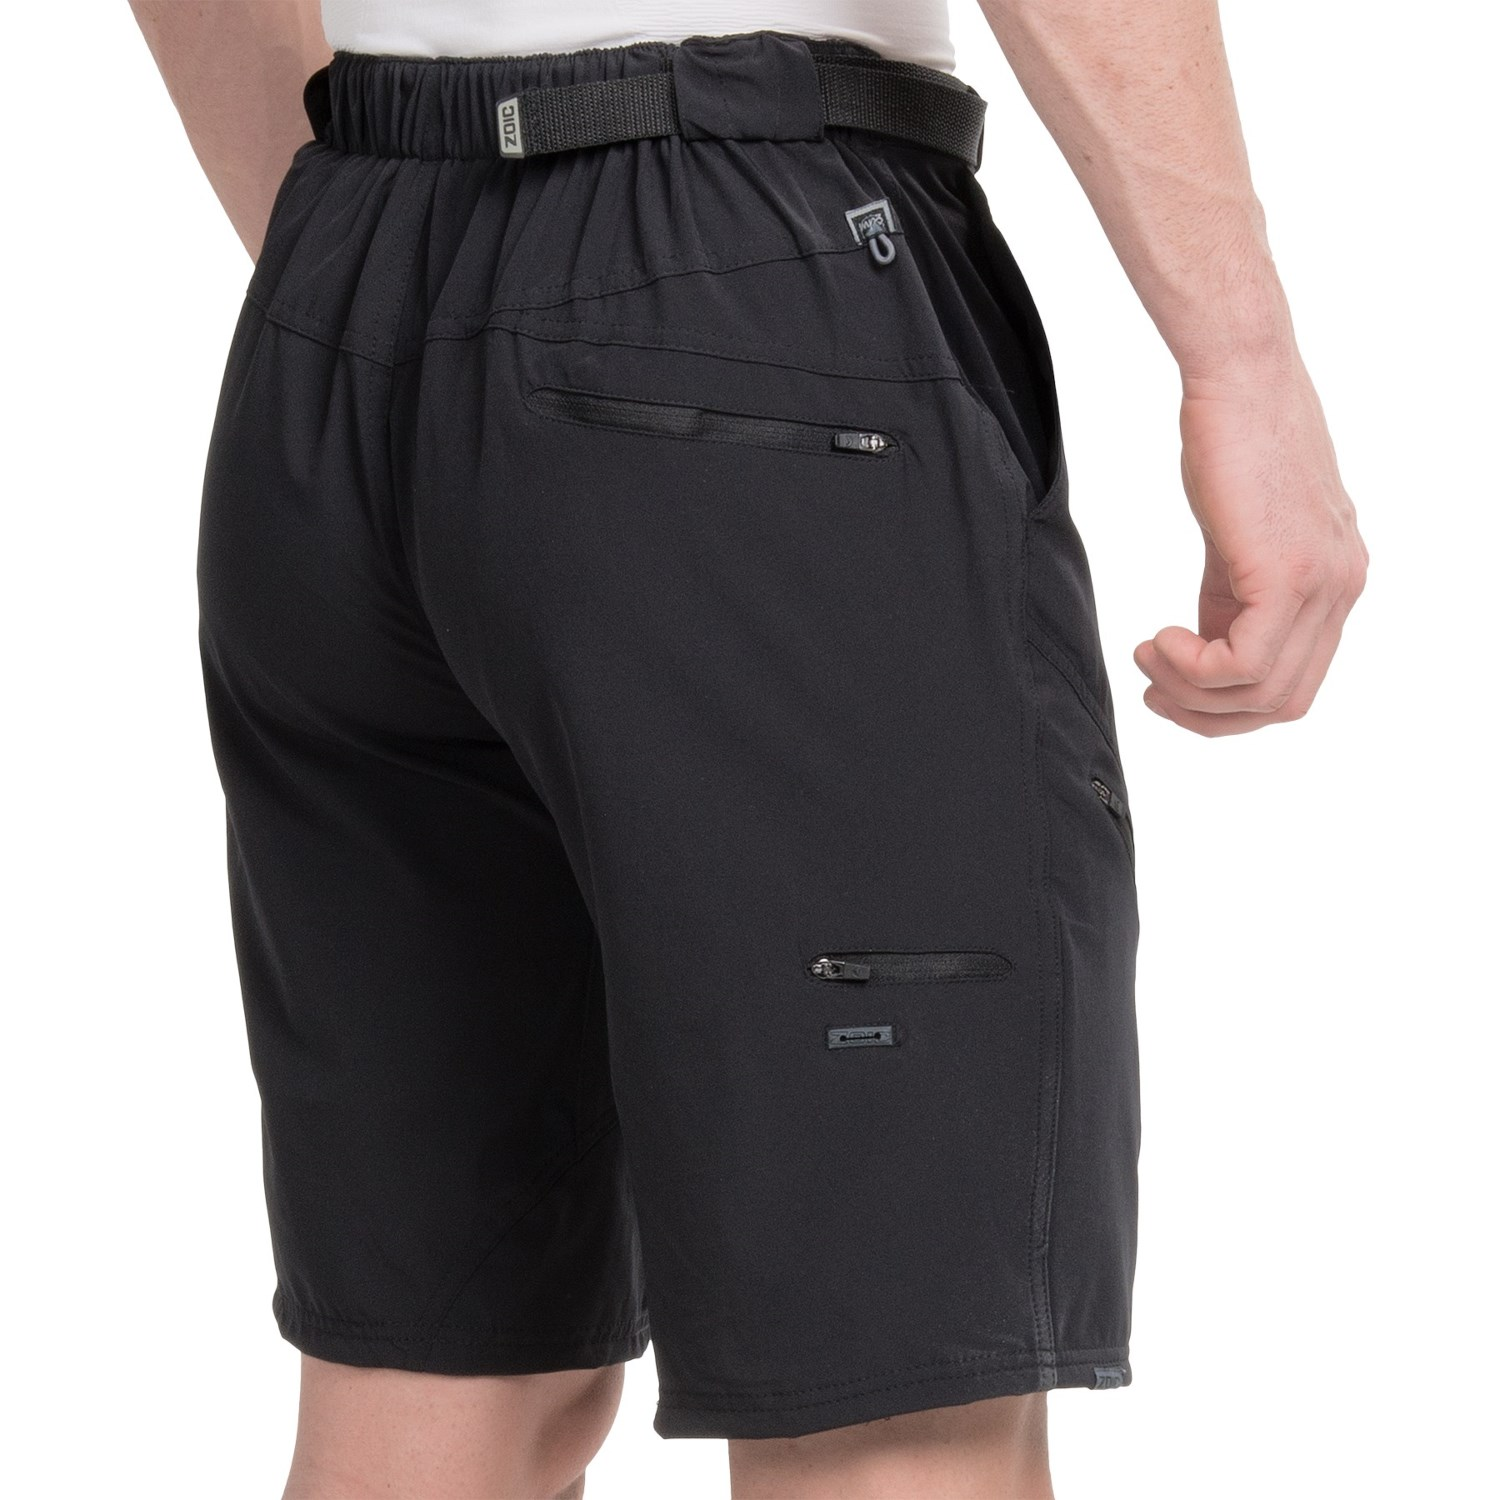 zoic men's bike shorts